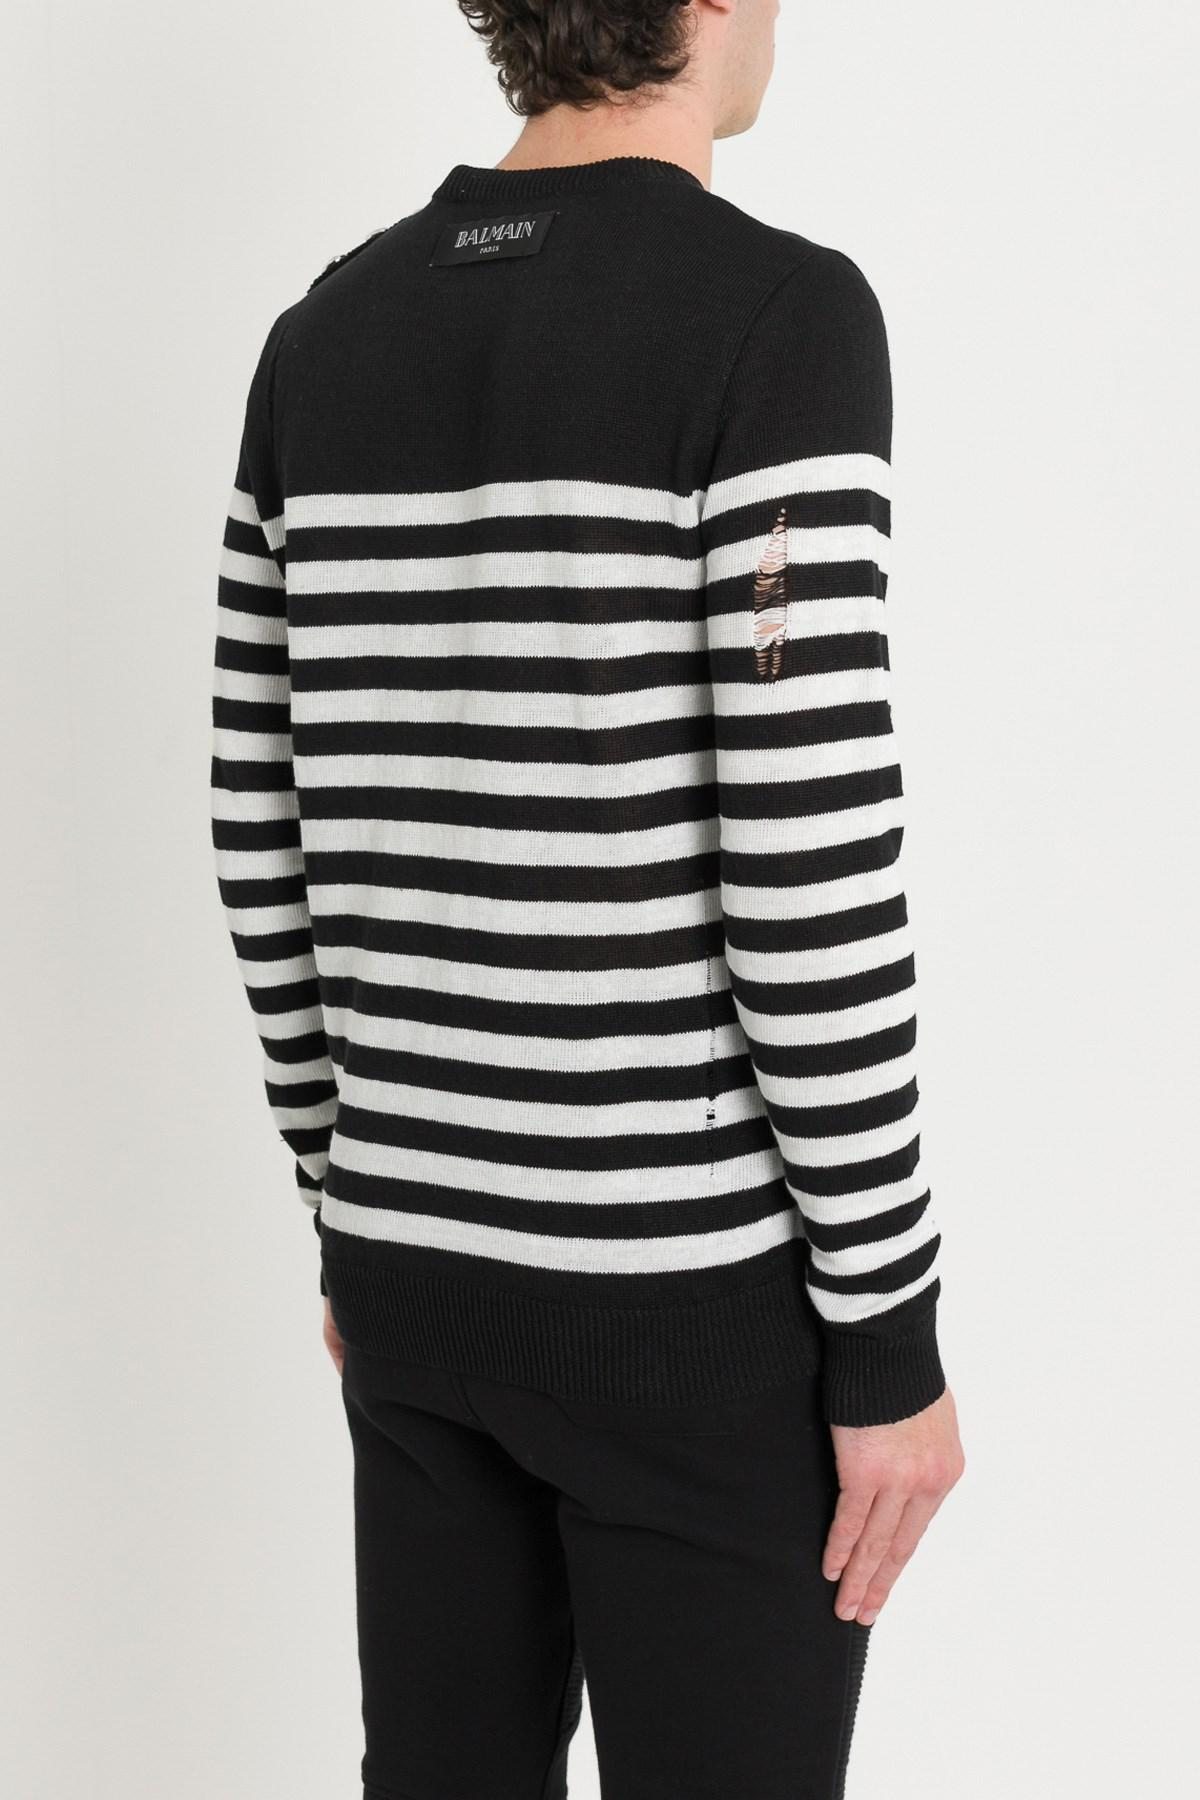 f3cddfef68 Balmain - Black Striped Knit Jumper With Patch for Men - Lyst. View  fullscreen